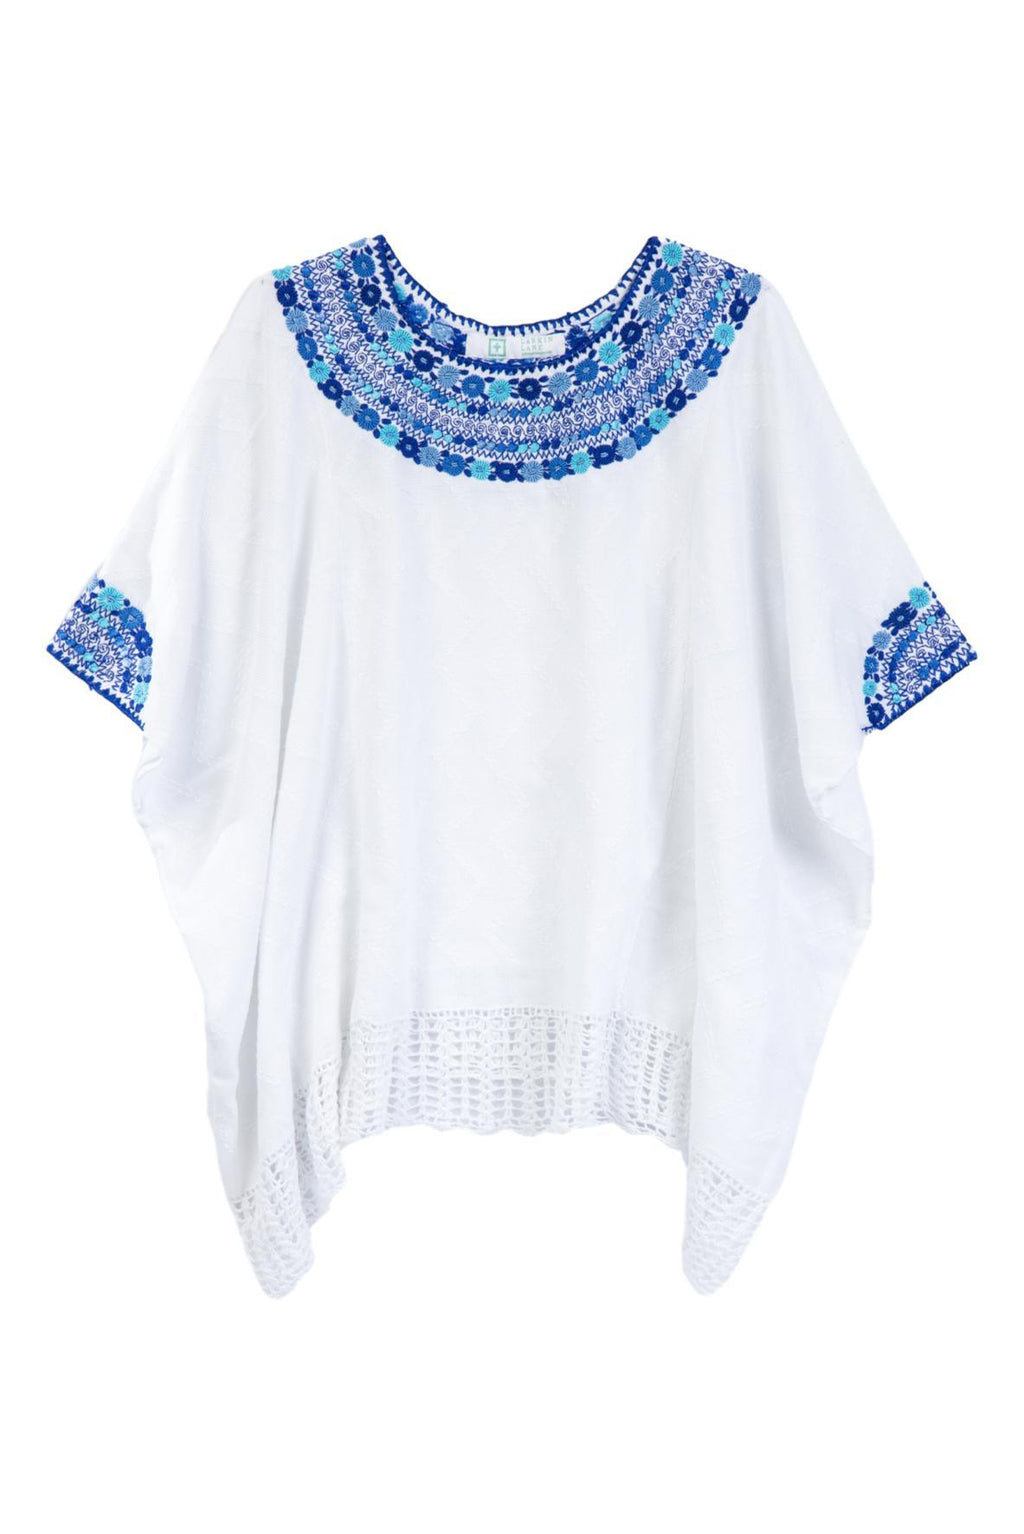 white and blue Guatemalan blouse, hand woven and embroidered tunic. Artisan chic, Bohemian elegance, fair trade and women weavers.